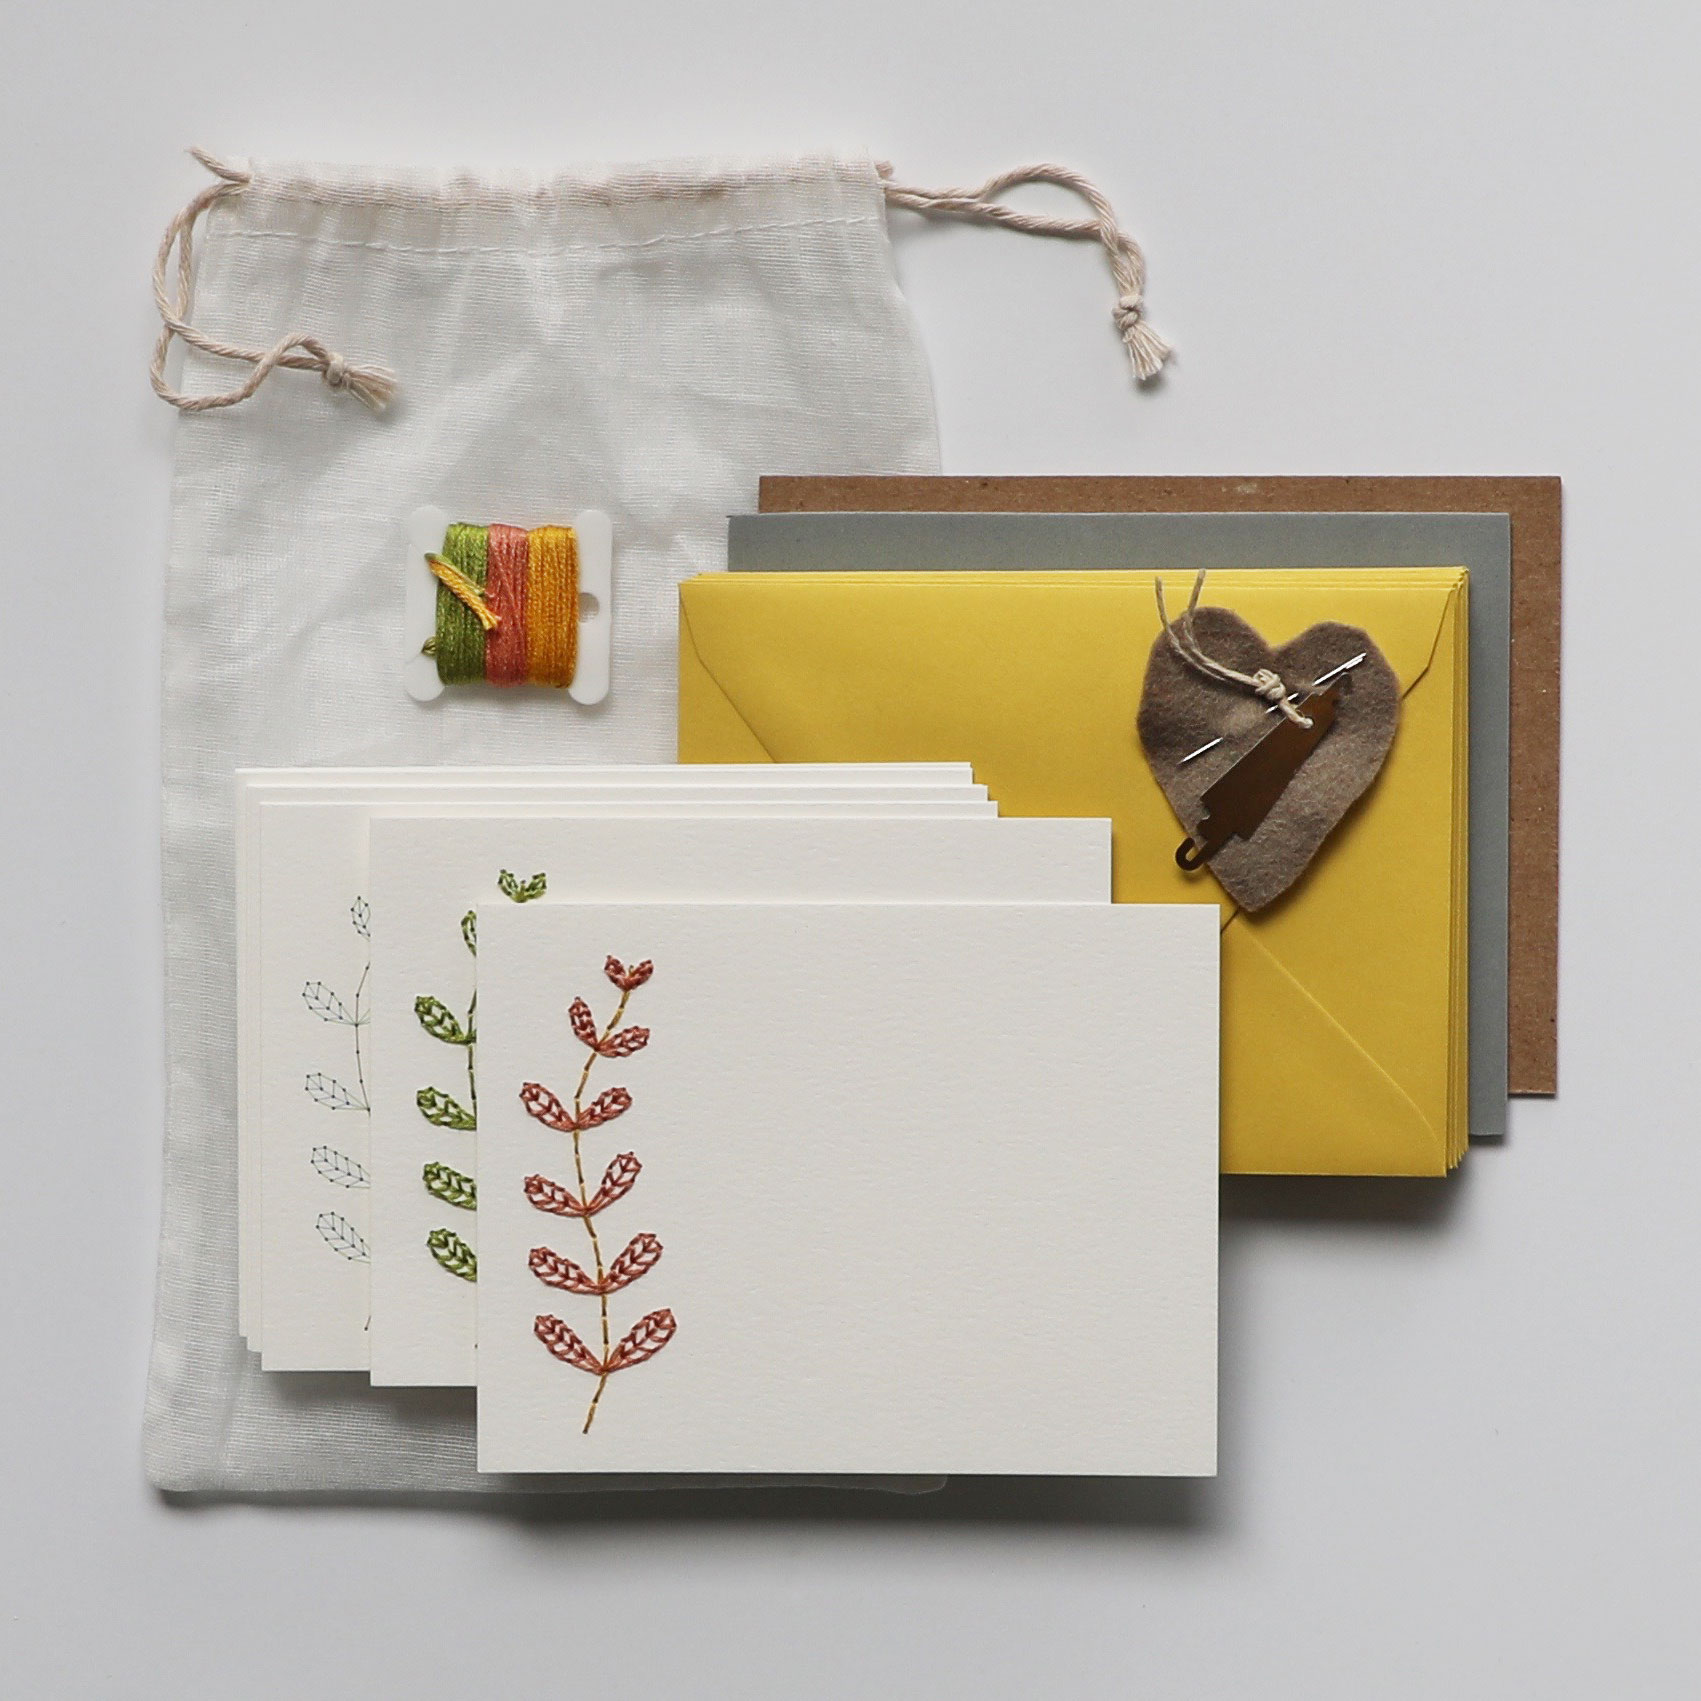 Playful Vines Embroidered Greeting Card Kit $18